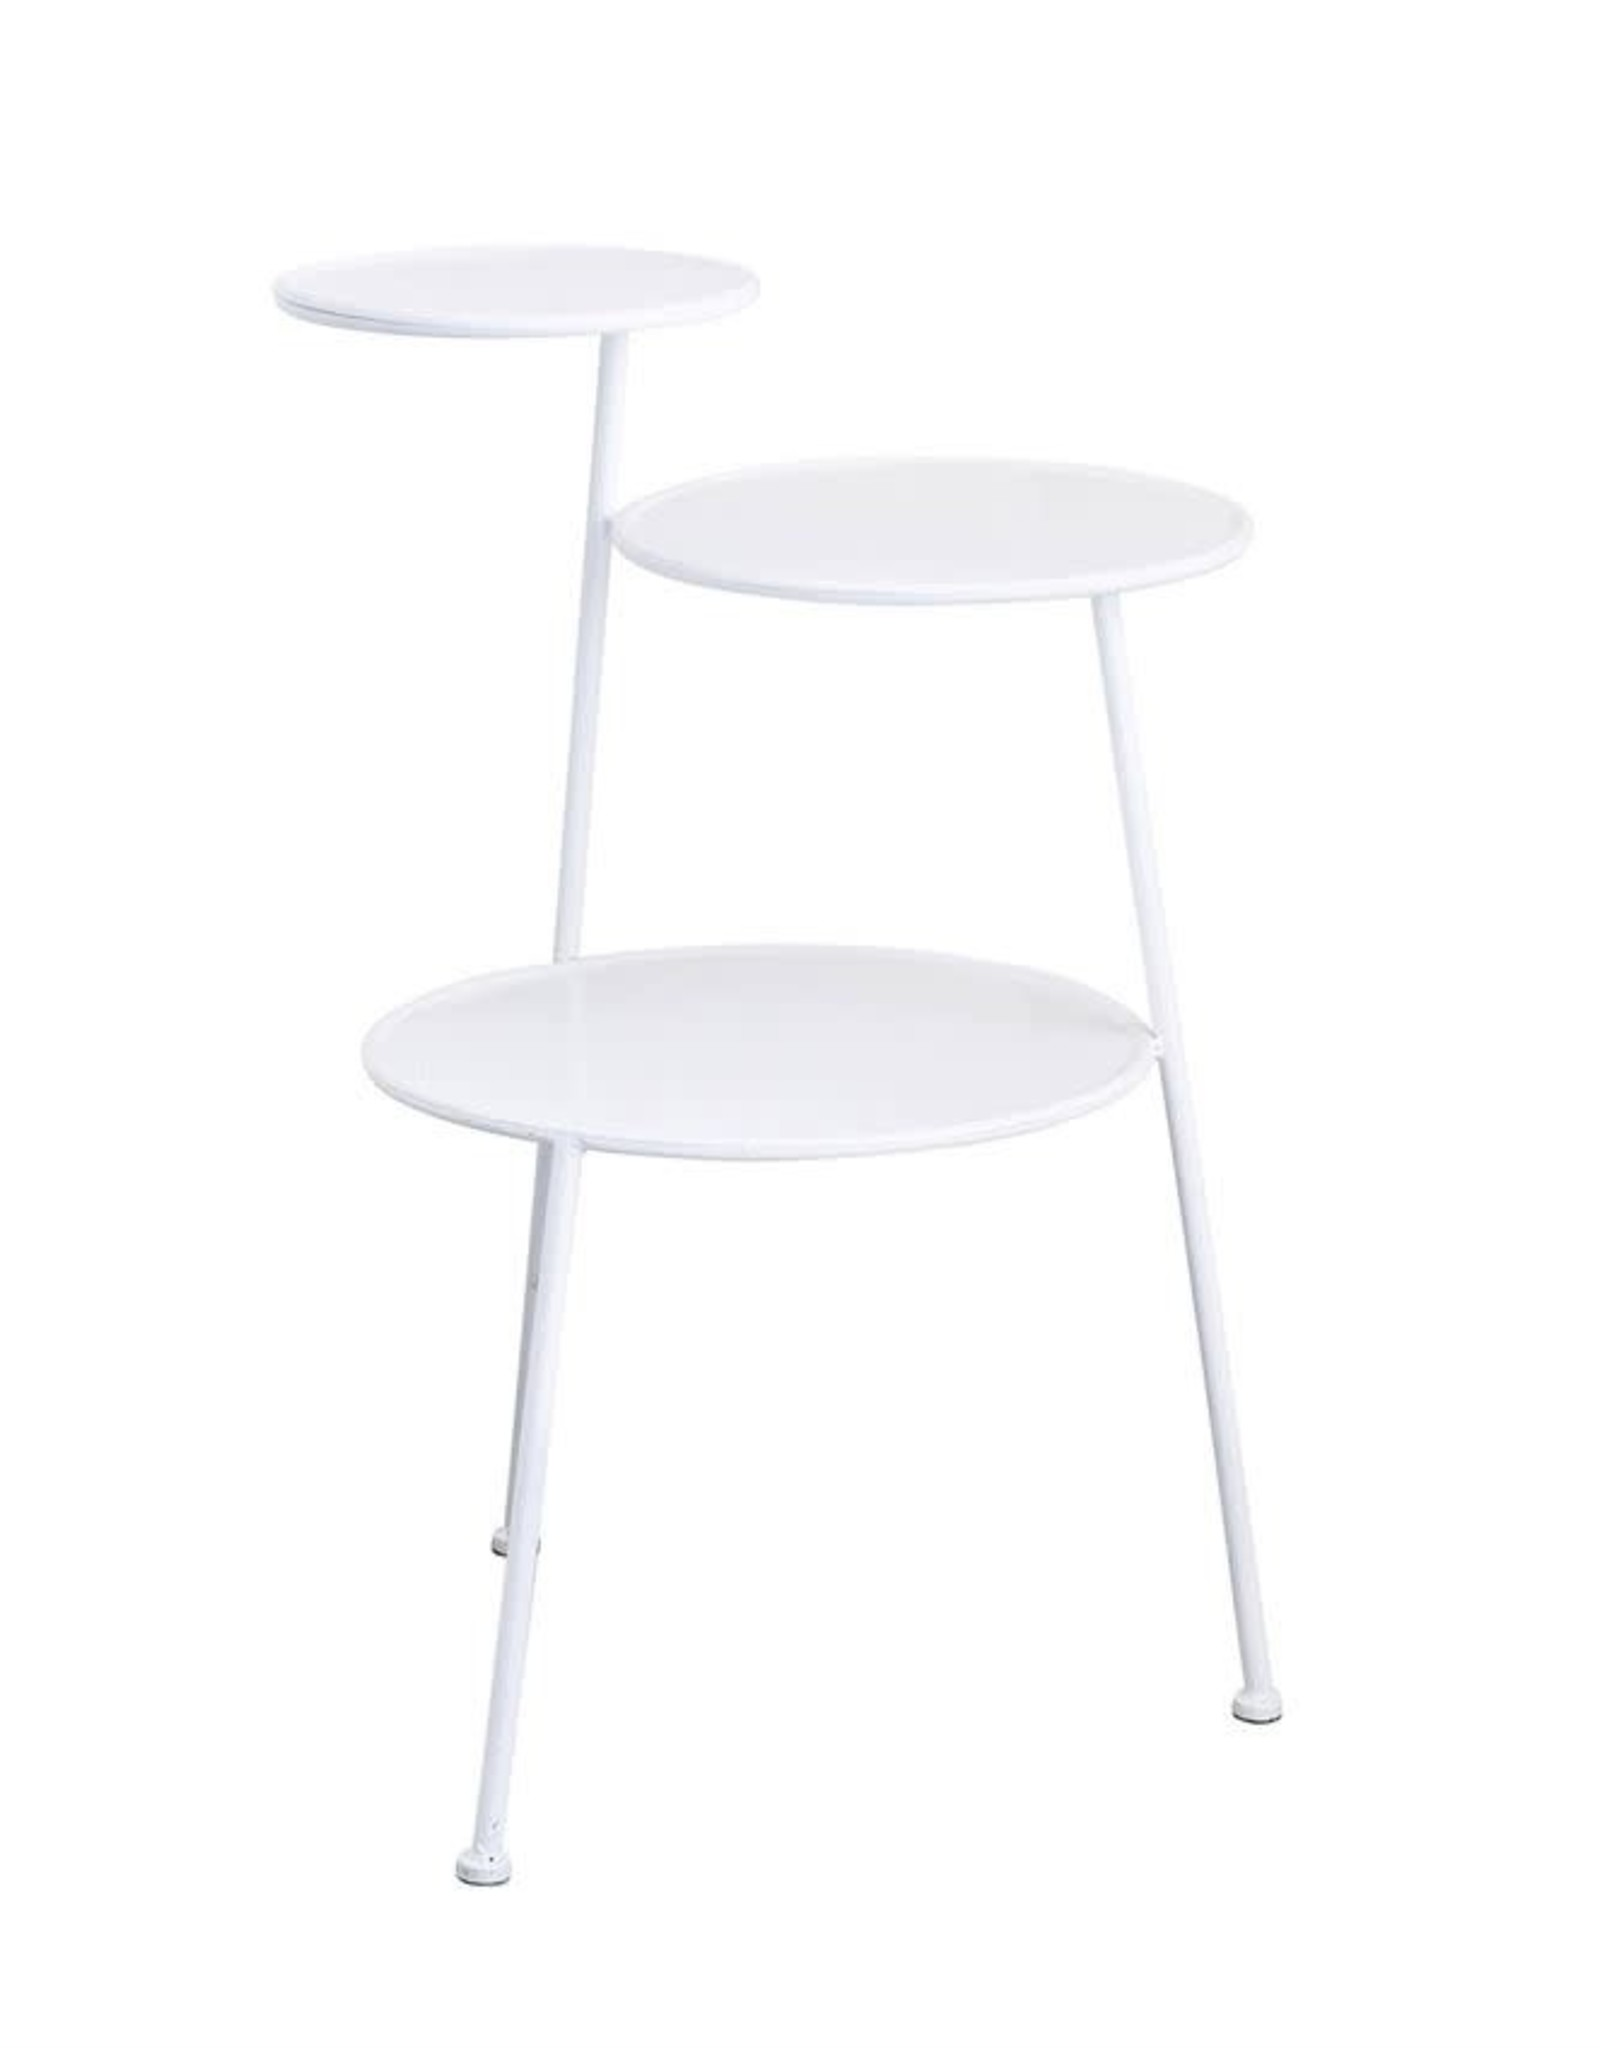 PLANT STAND 3 TIER WHITE METAL